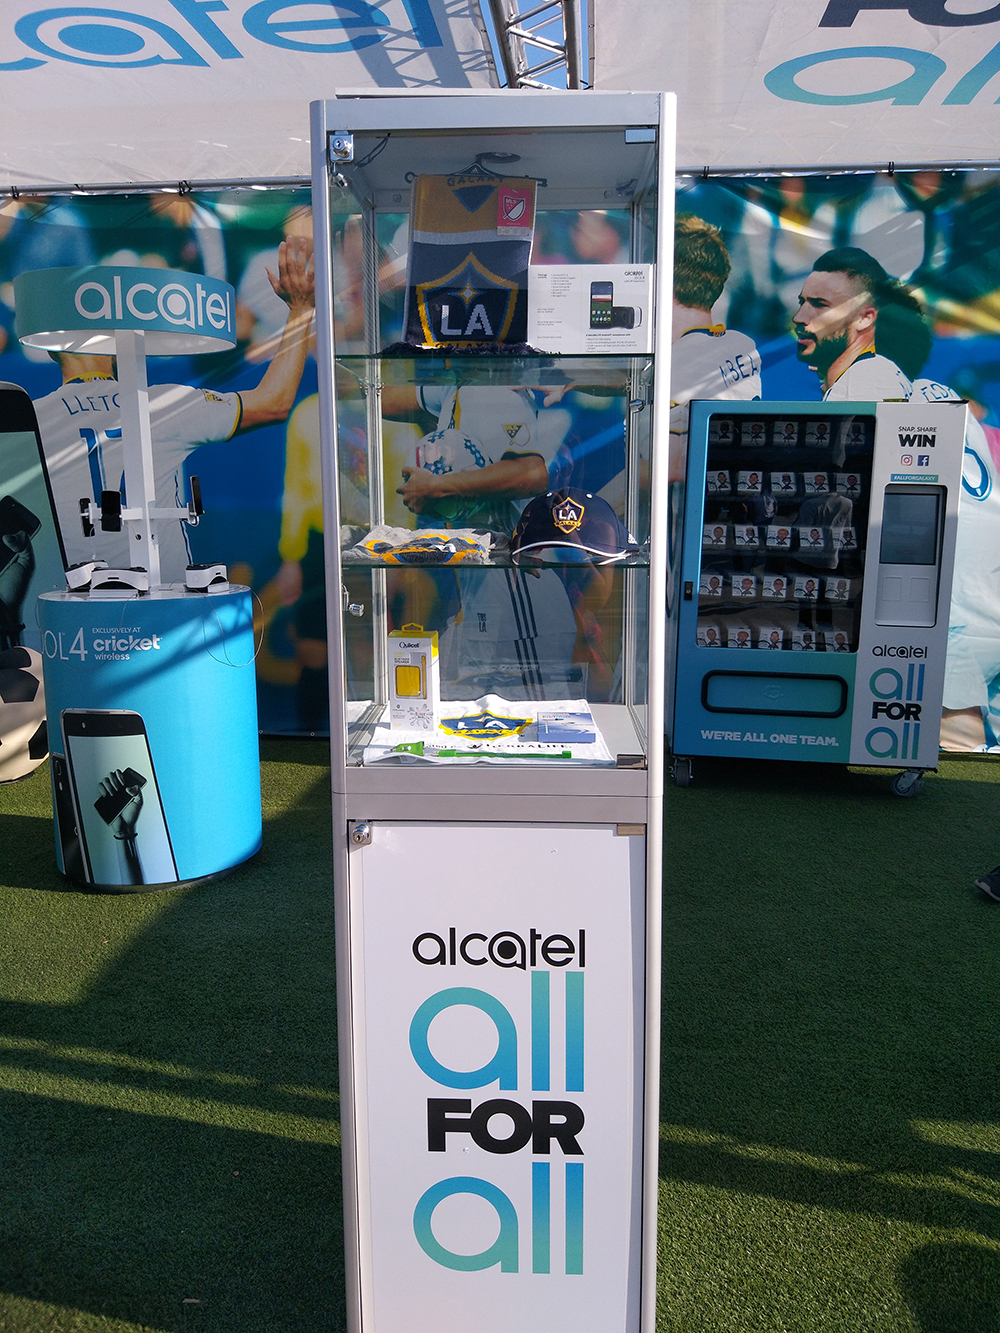 Alcatel_Pulse_LA_Galaxy_Sponsor_Booth_Pic2_ON_DECK_CS.jpg